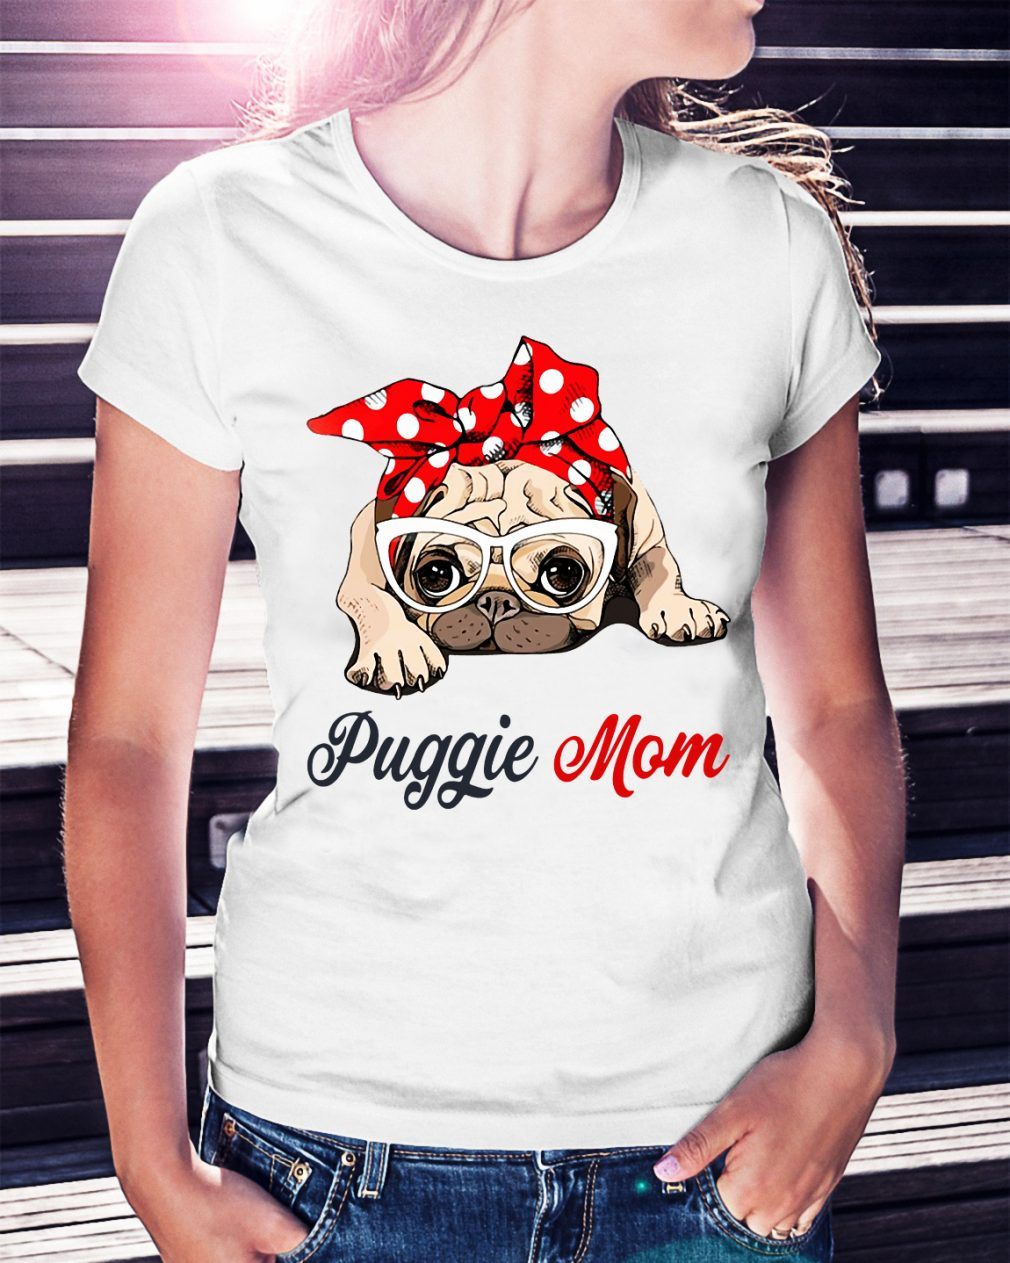 Dog mom: Puggie mom bow head scarf shirt